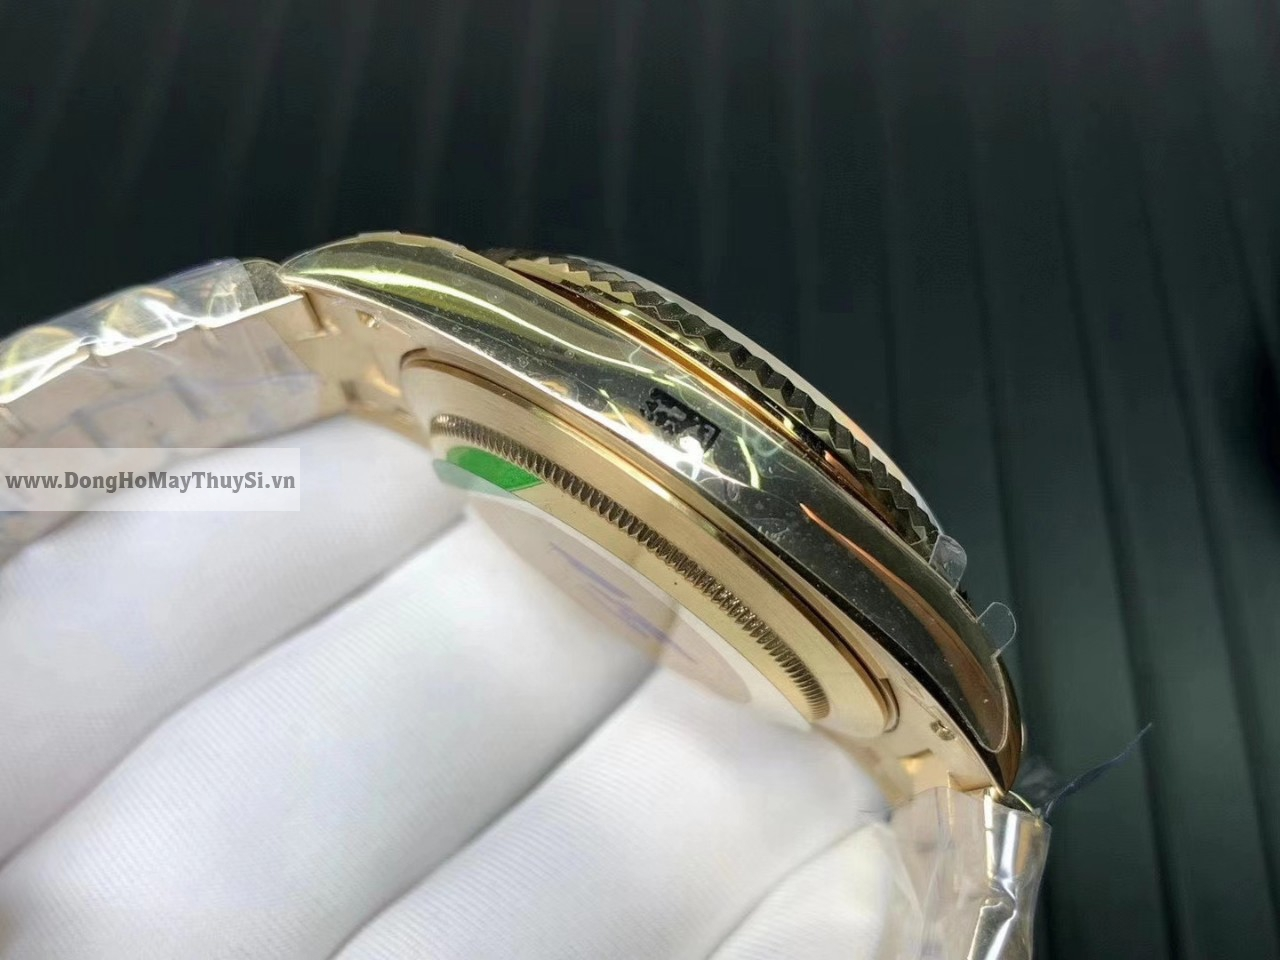 Rolex Day-Date Fake Cao Cấp Máy Thụy Sỹ